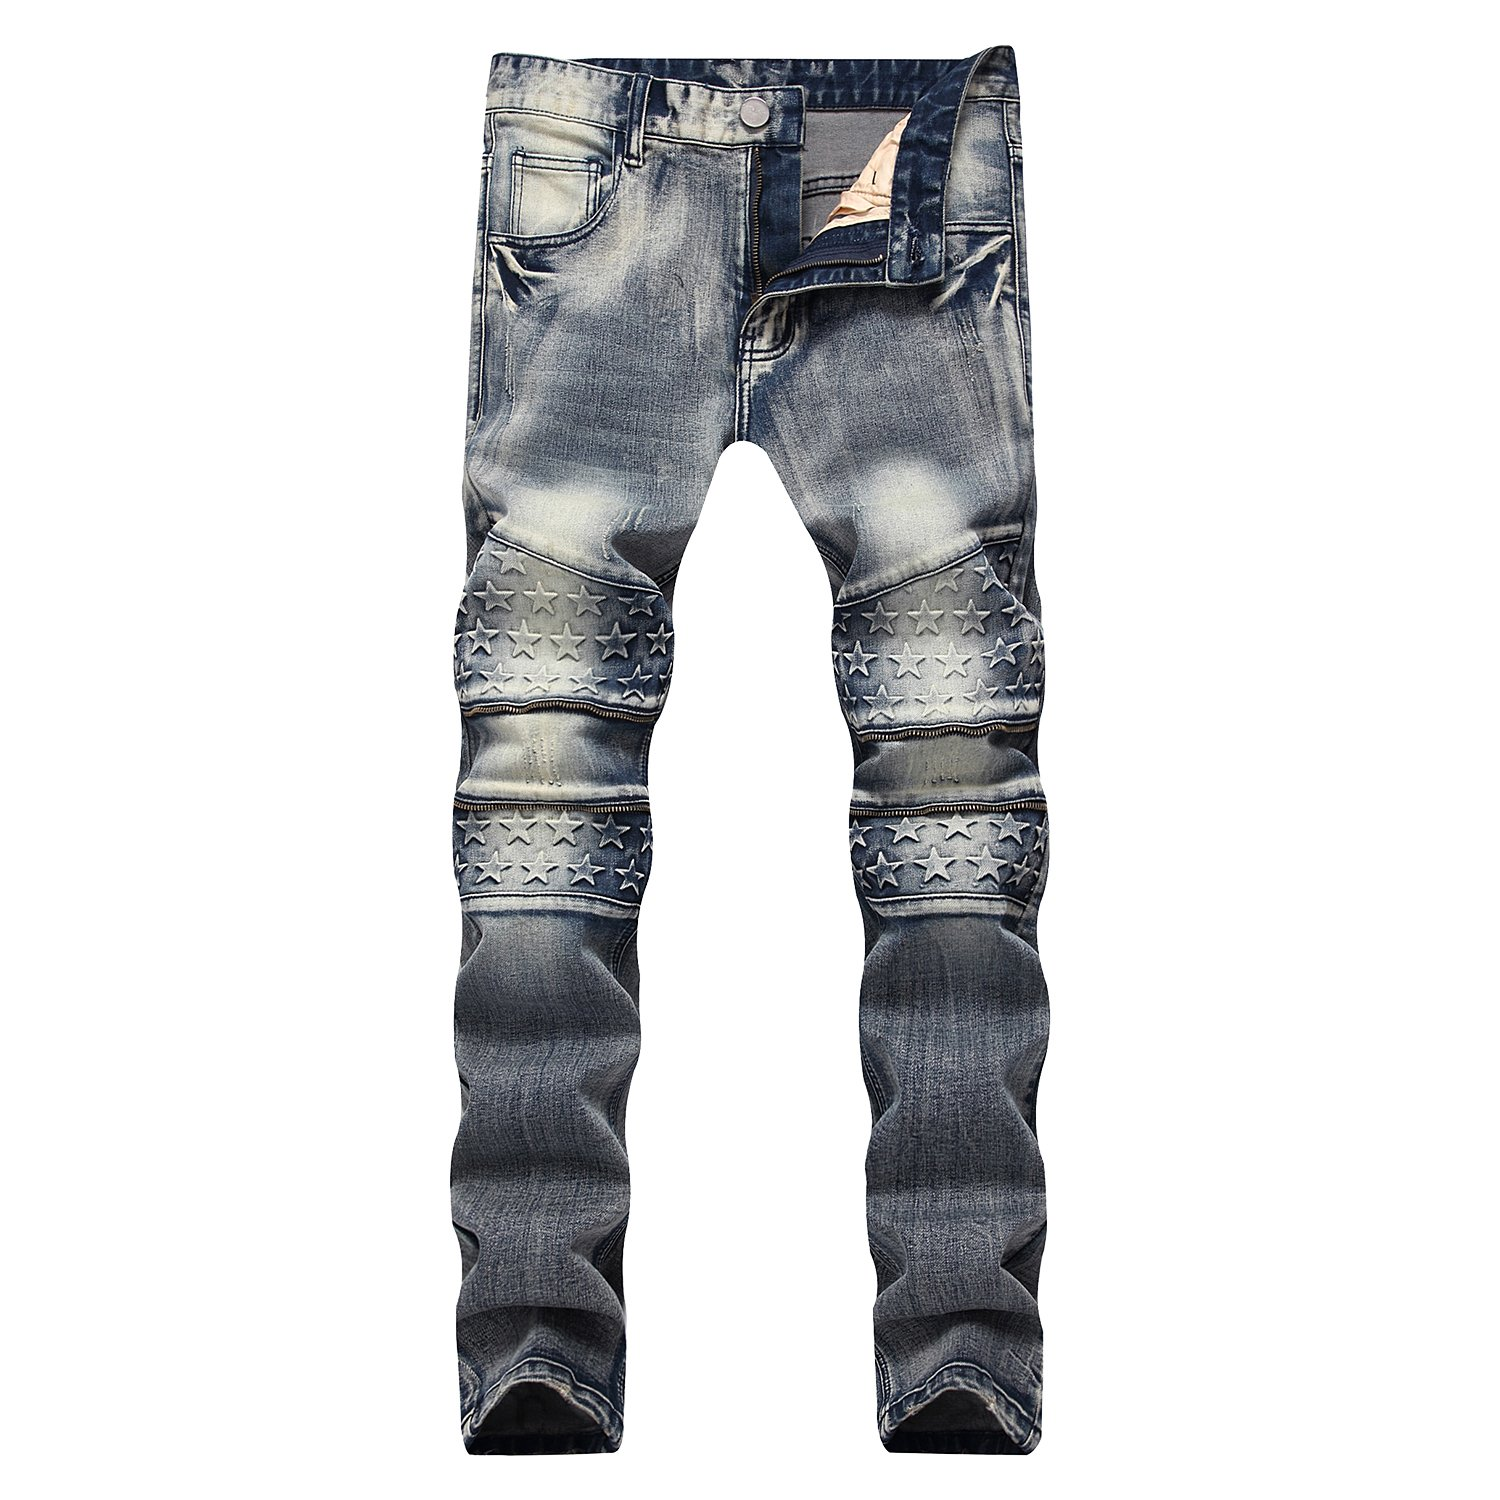 Finrosy Men's Ripped Biker Jeans Distressed Straight Fit Jeans with Zipper Holes for Men(Star, 34Wx32L)